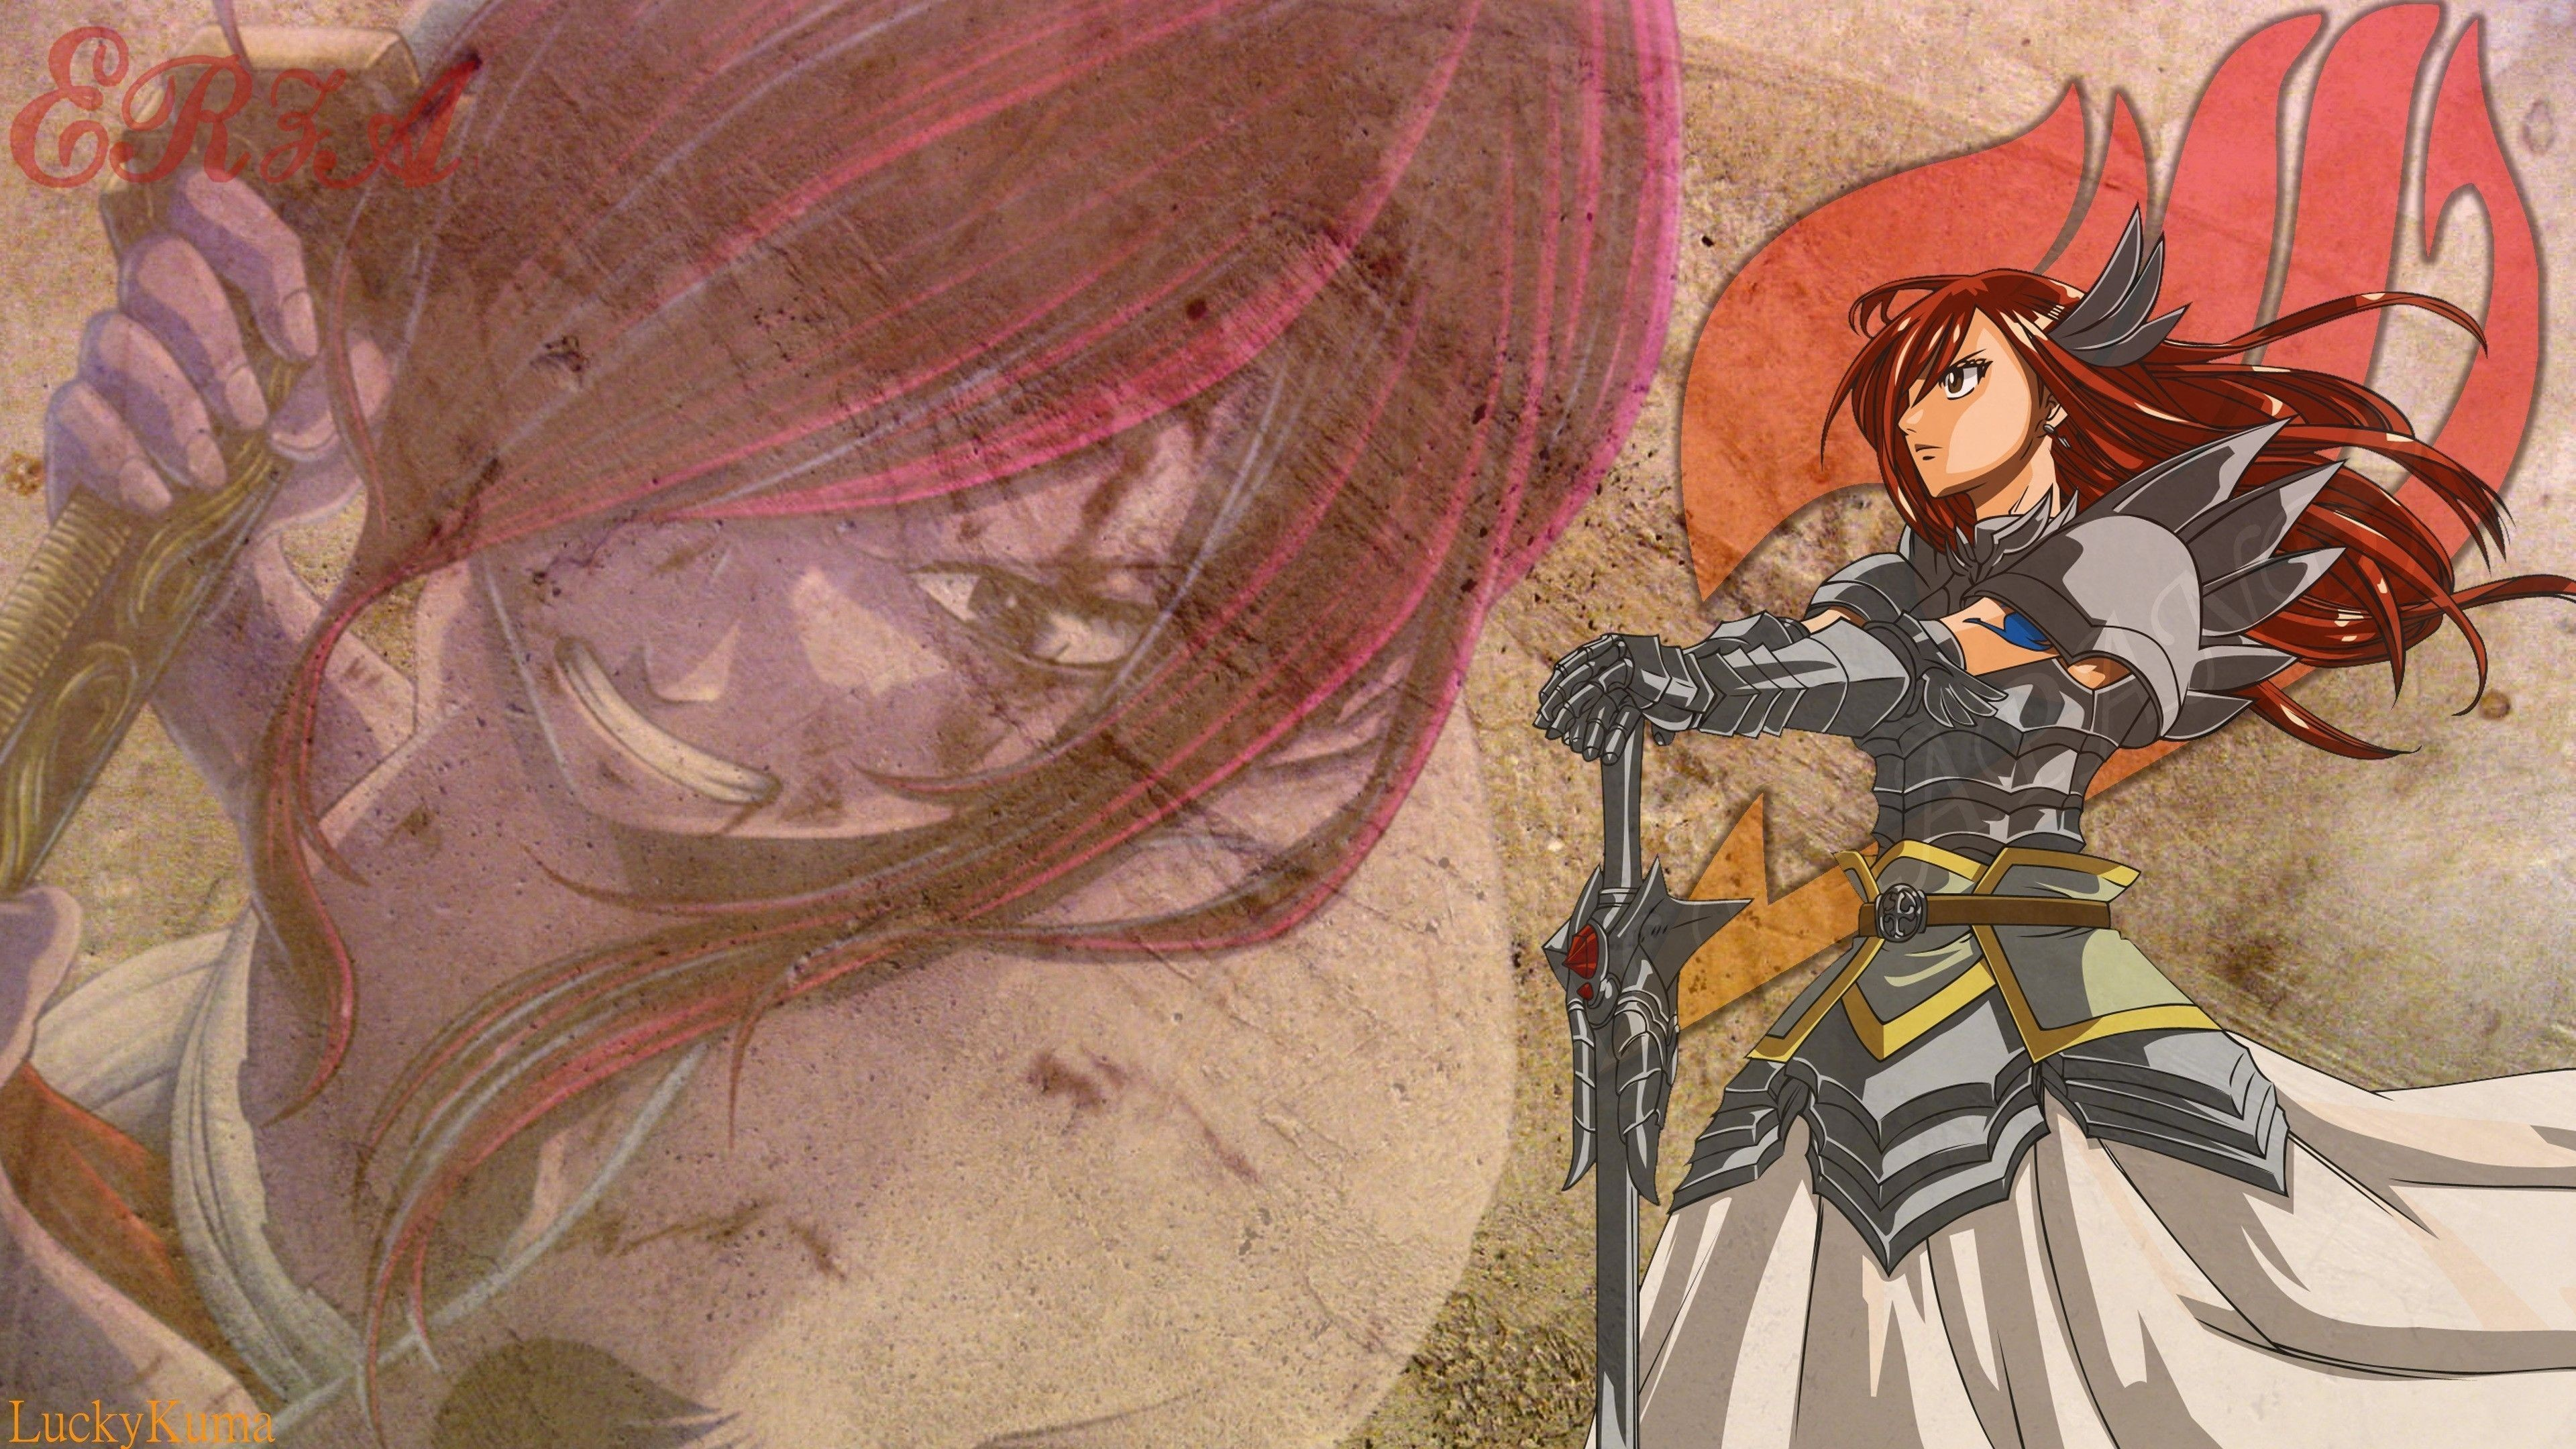 3840x2160 HD Backgrounds Erza Scarlet.